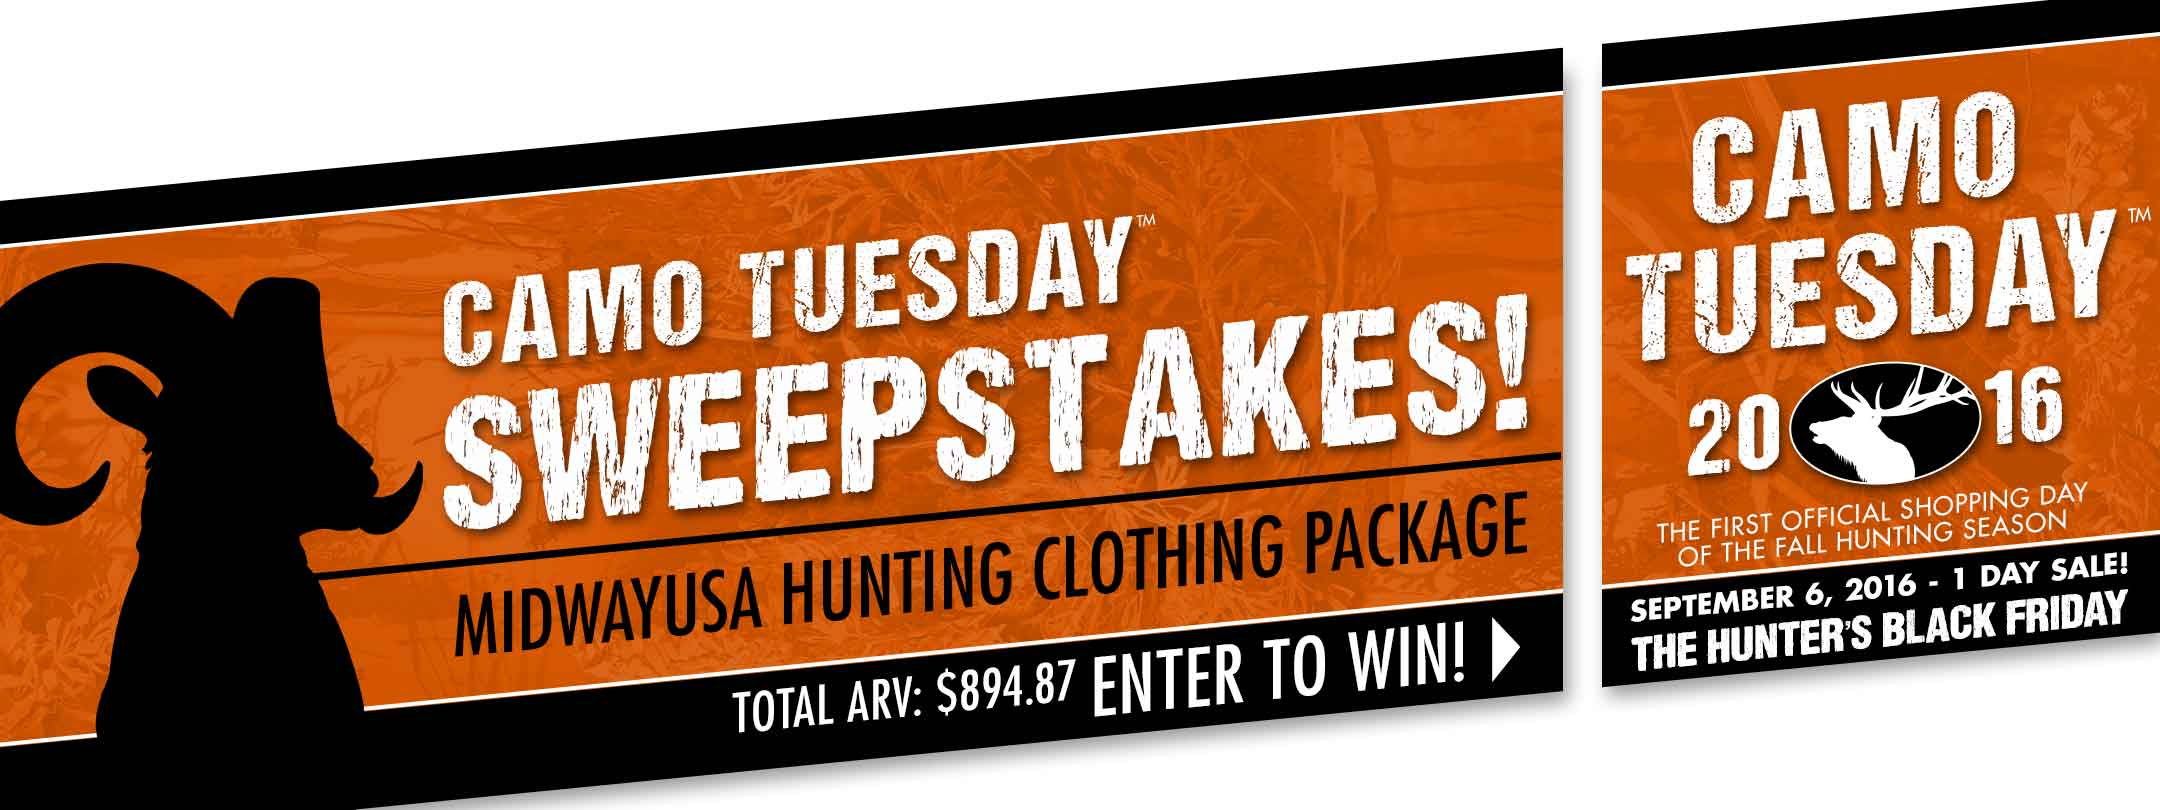 Camo Tuesday 1 Day Sale + Enter to Win!